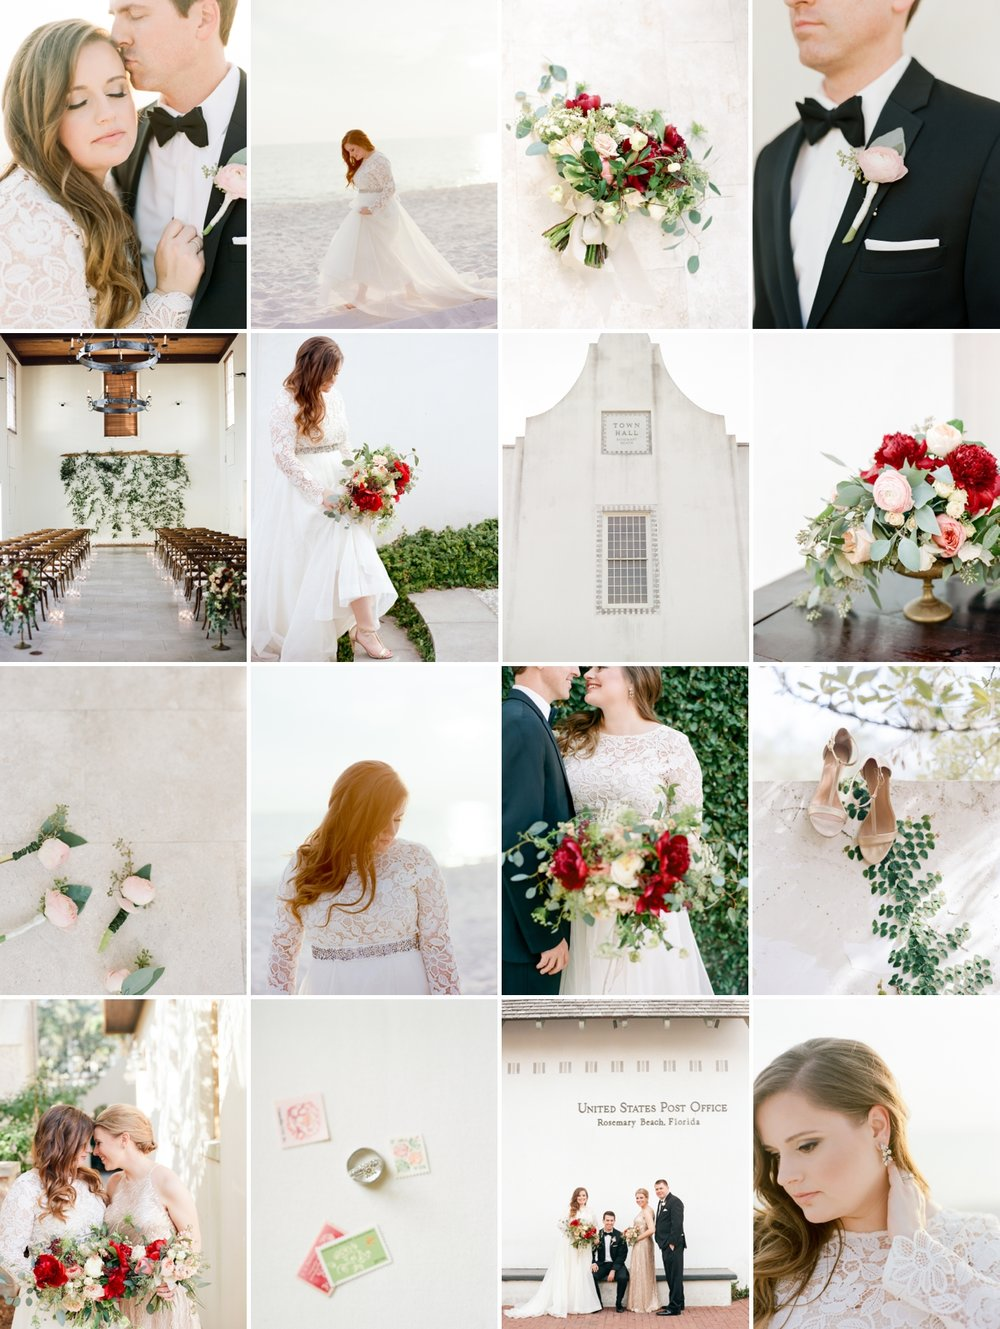 rosemary_beach_wedding_photographer_shannon_griffin_0014.jpg